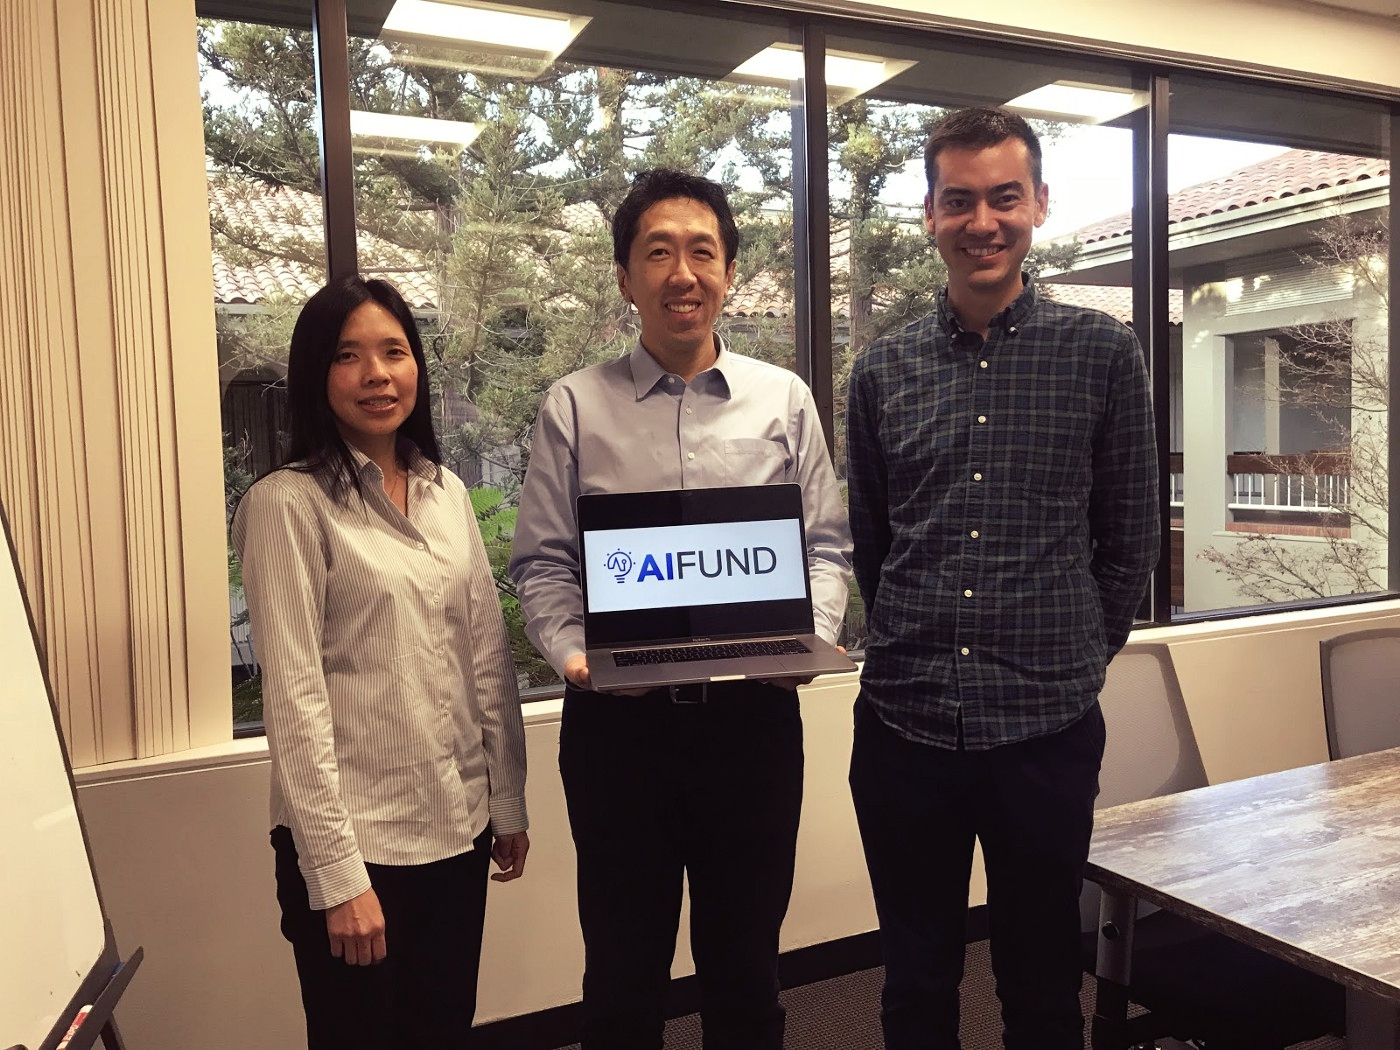 The AI guru announced the formation of a startups incubator with the aim of building transforming companies and improving human life. - Photo: Andrew Ng.